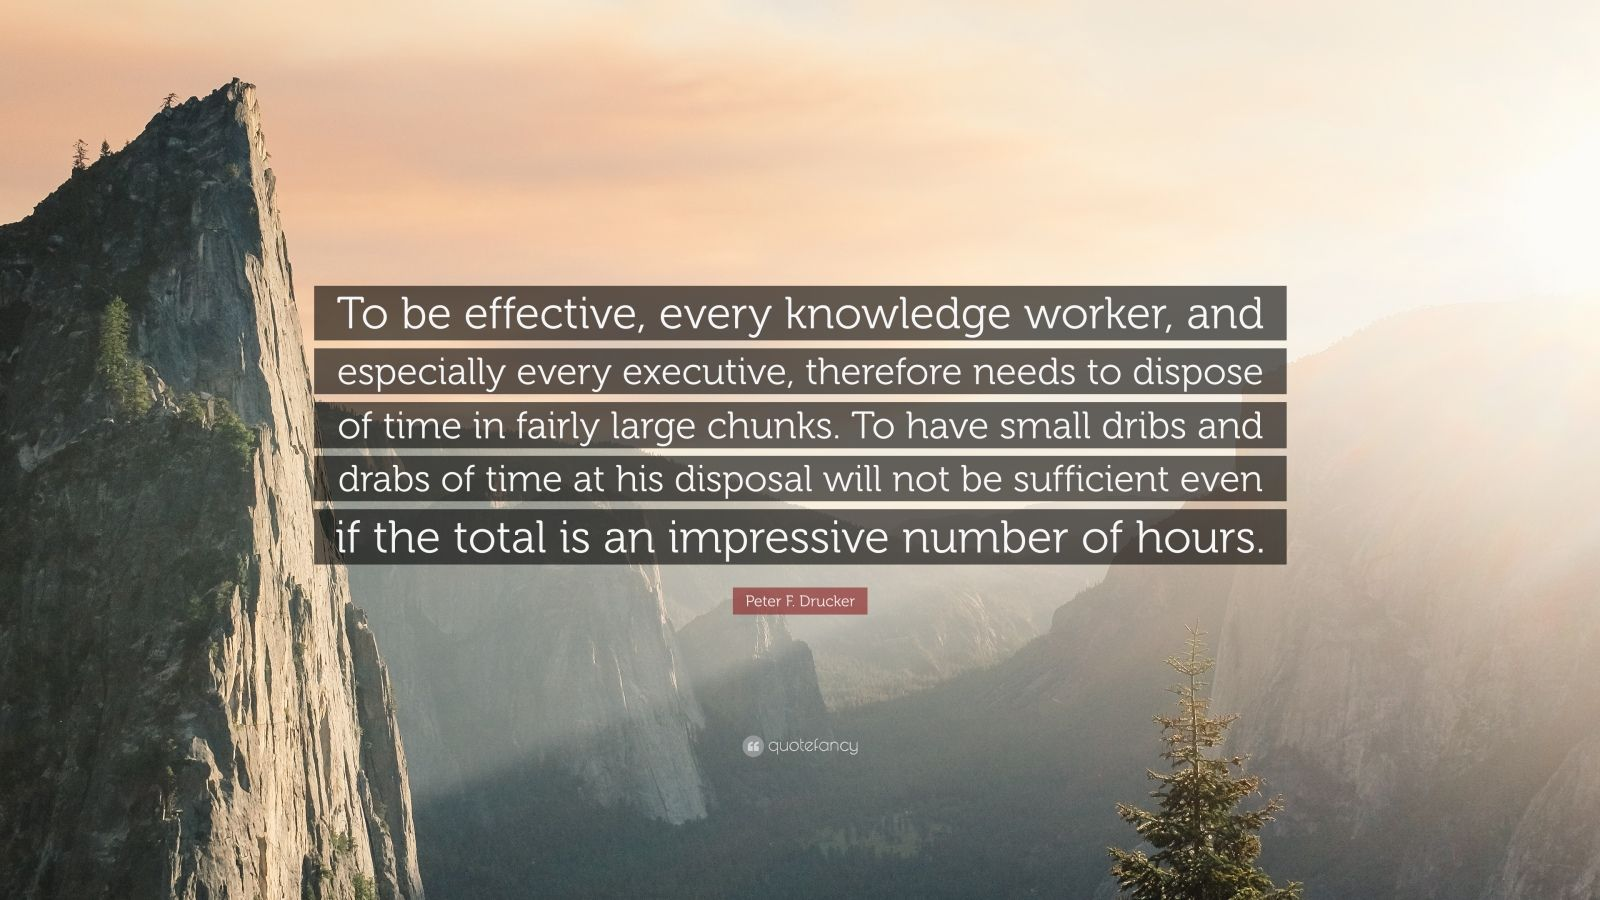 """Peter F. Drucker Quote: """"To be effective, every knowledge worker, and especially every executive, therefore needs to dispose of time in fairly large chunks. To have small dribs and drabs of time at his disposal will not be sufficient even if the total is an impressive number of hours."""""""